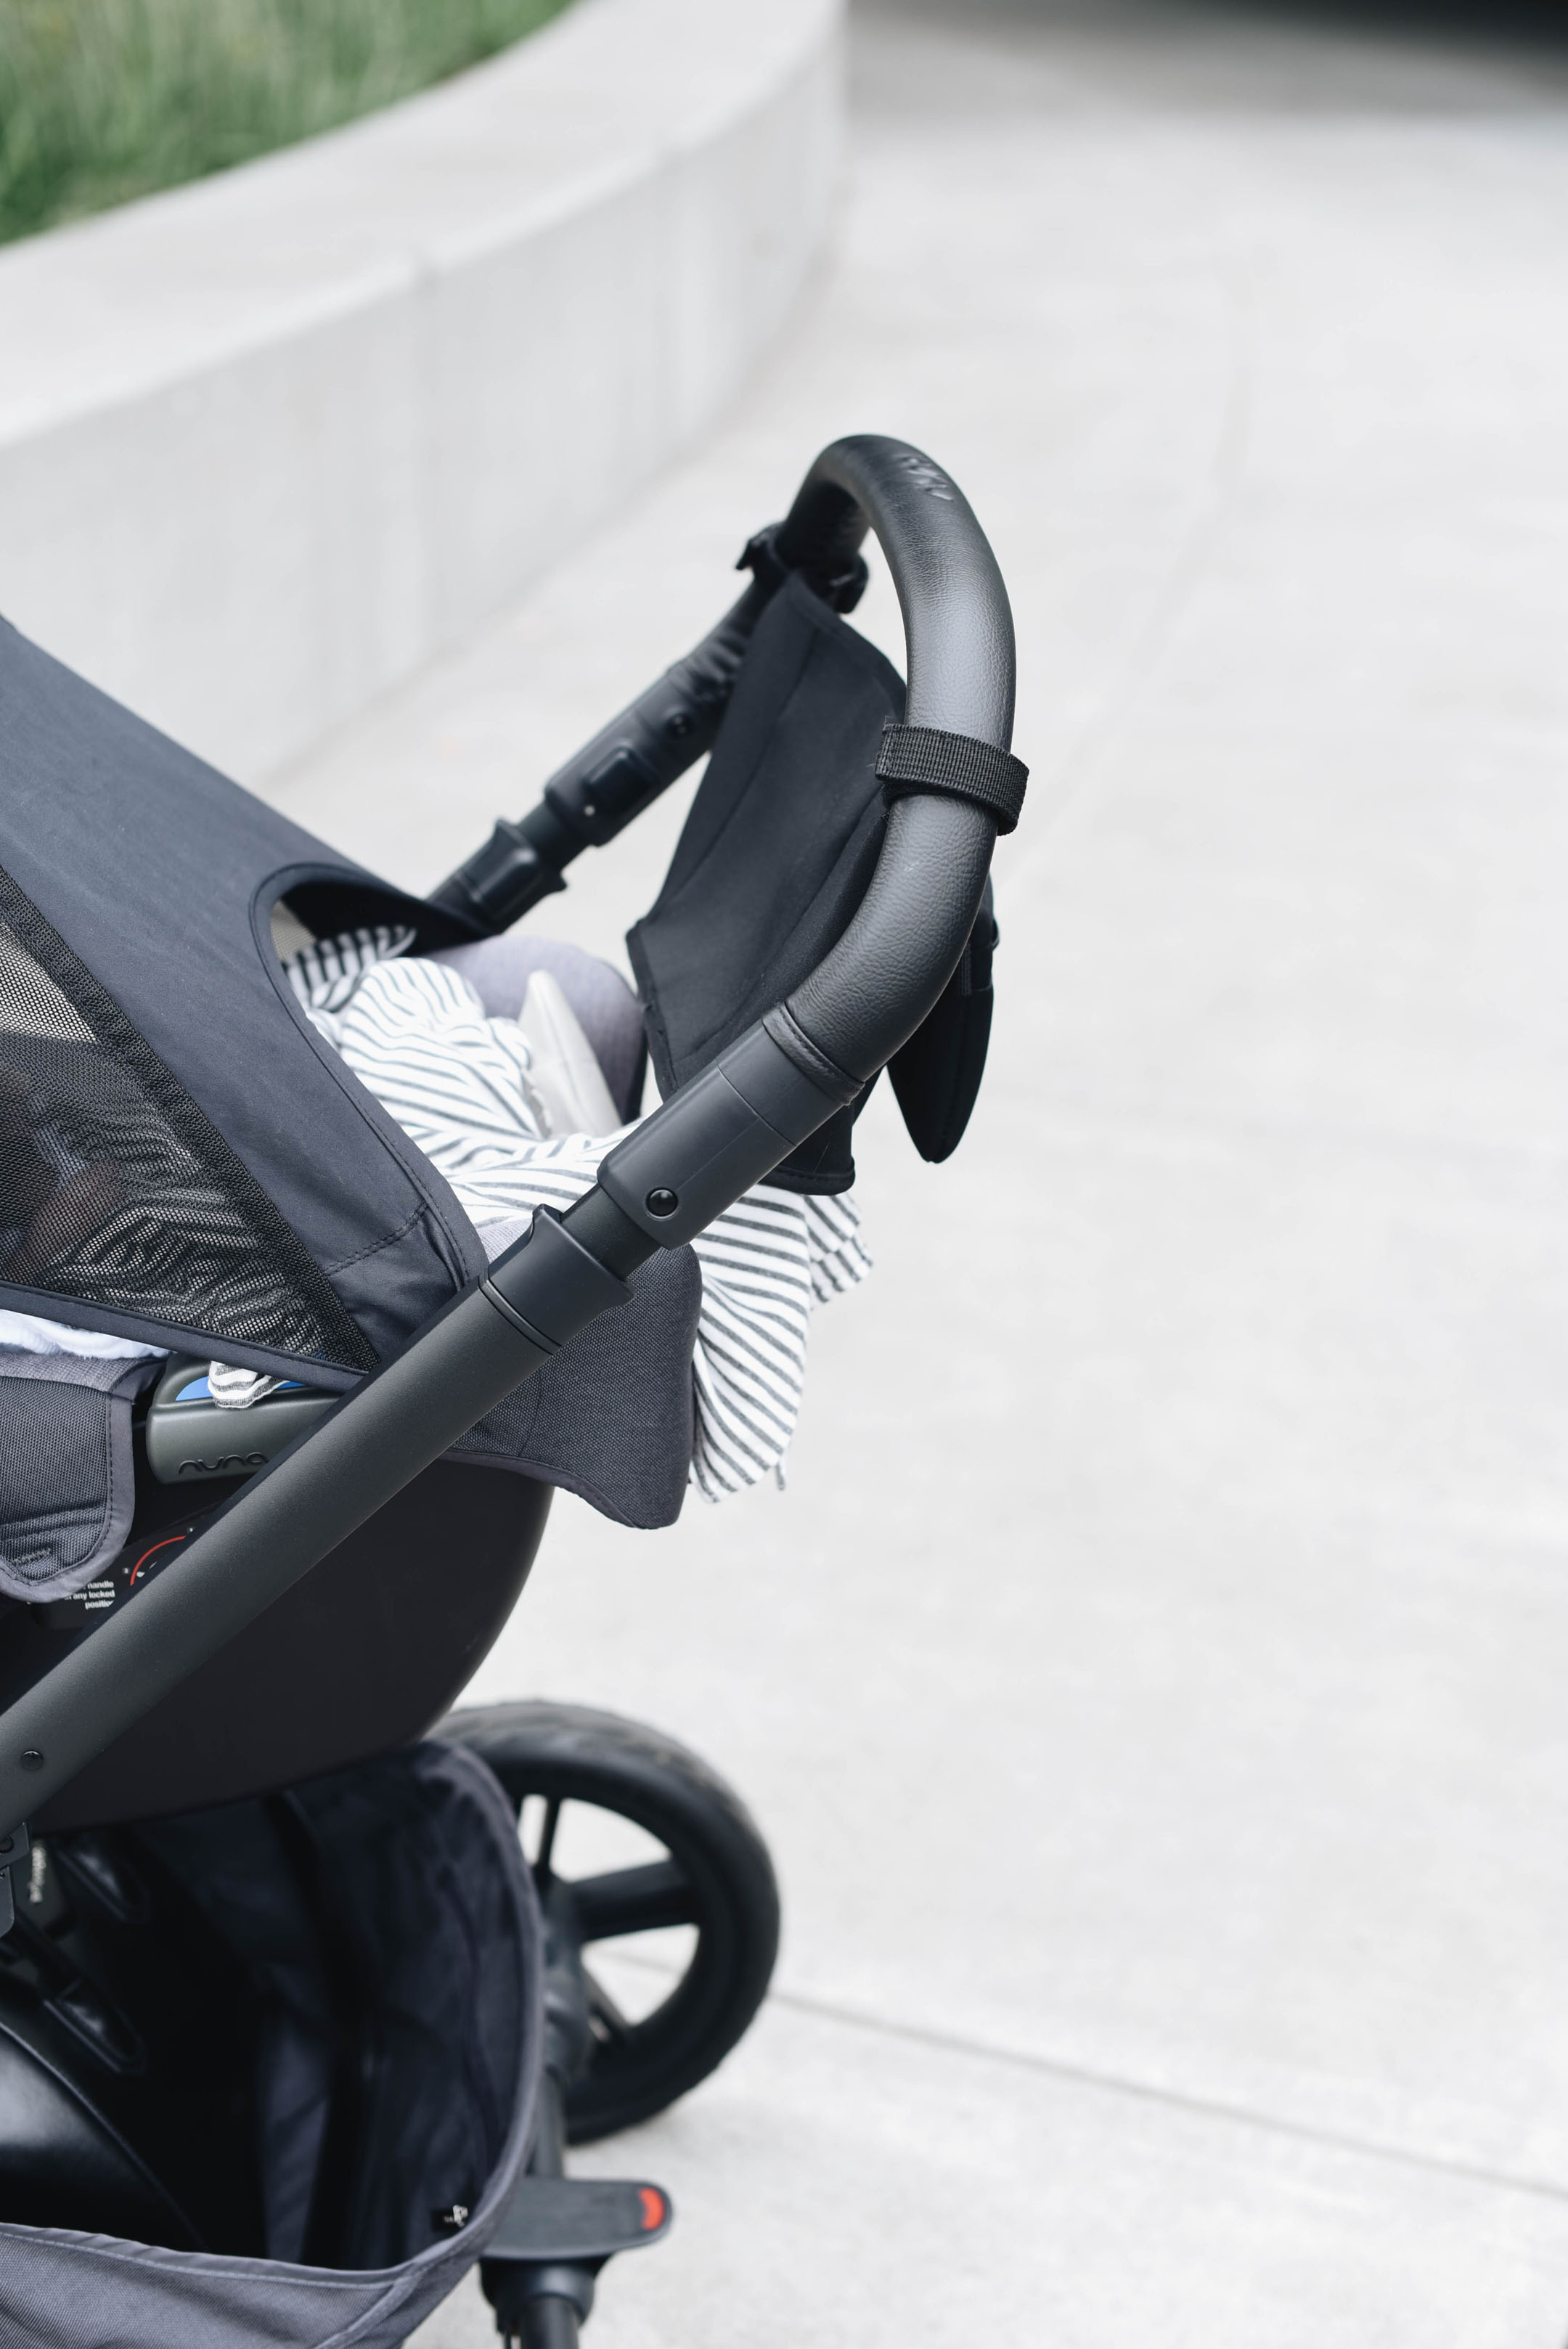 Nuna Mixx Stroller extendable handle